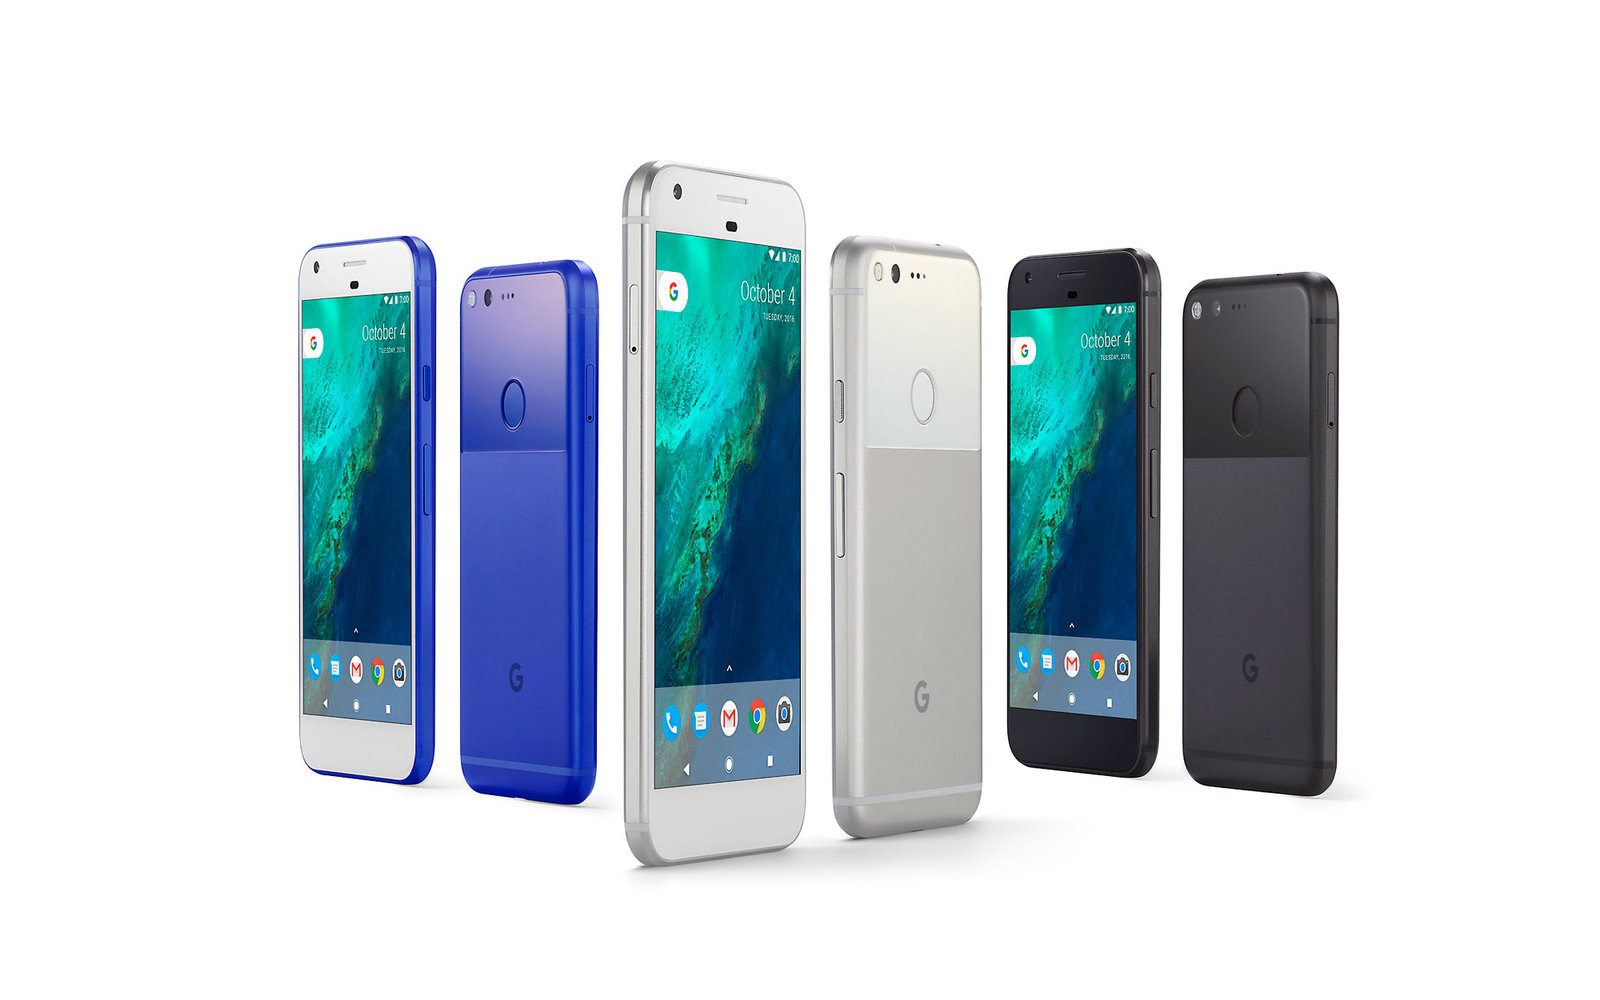 New Pixel Phones Launched by Google